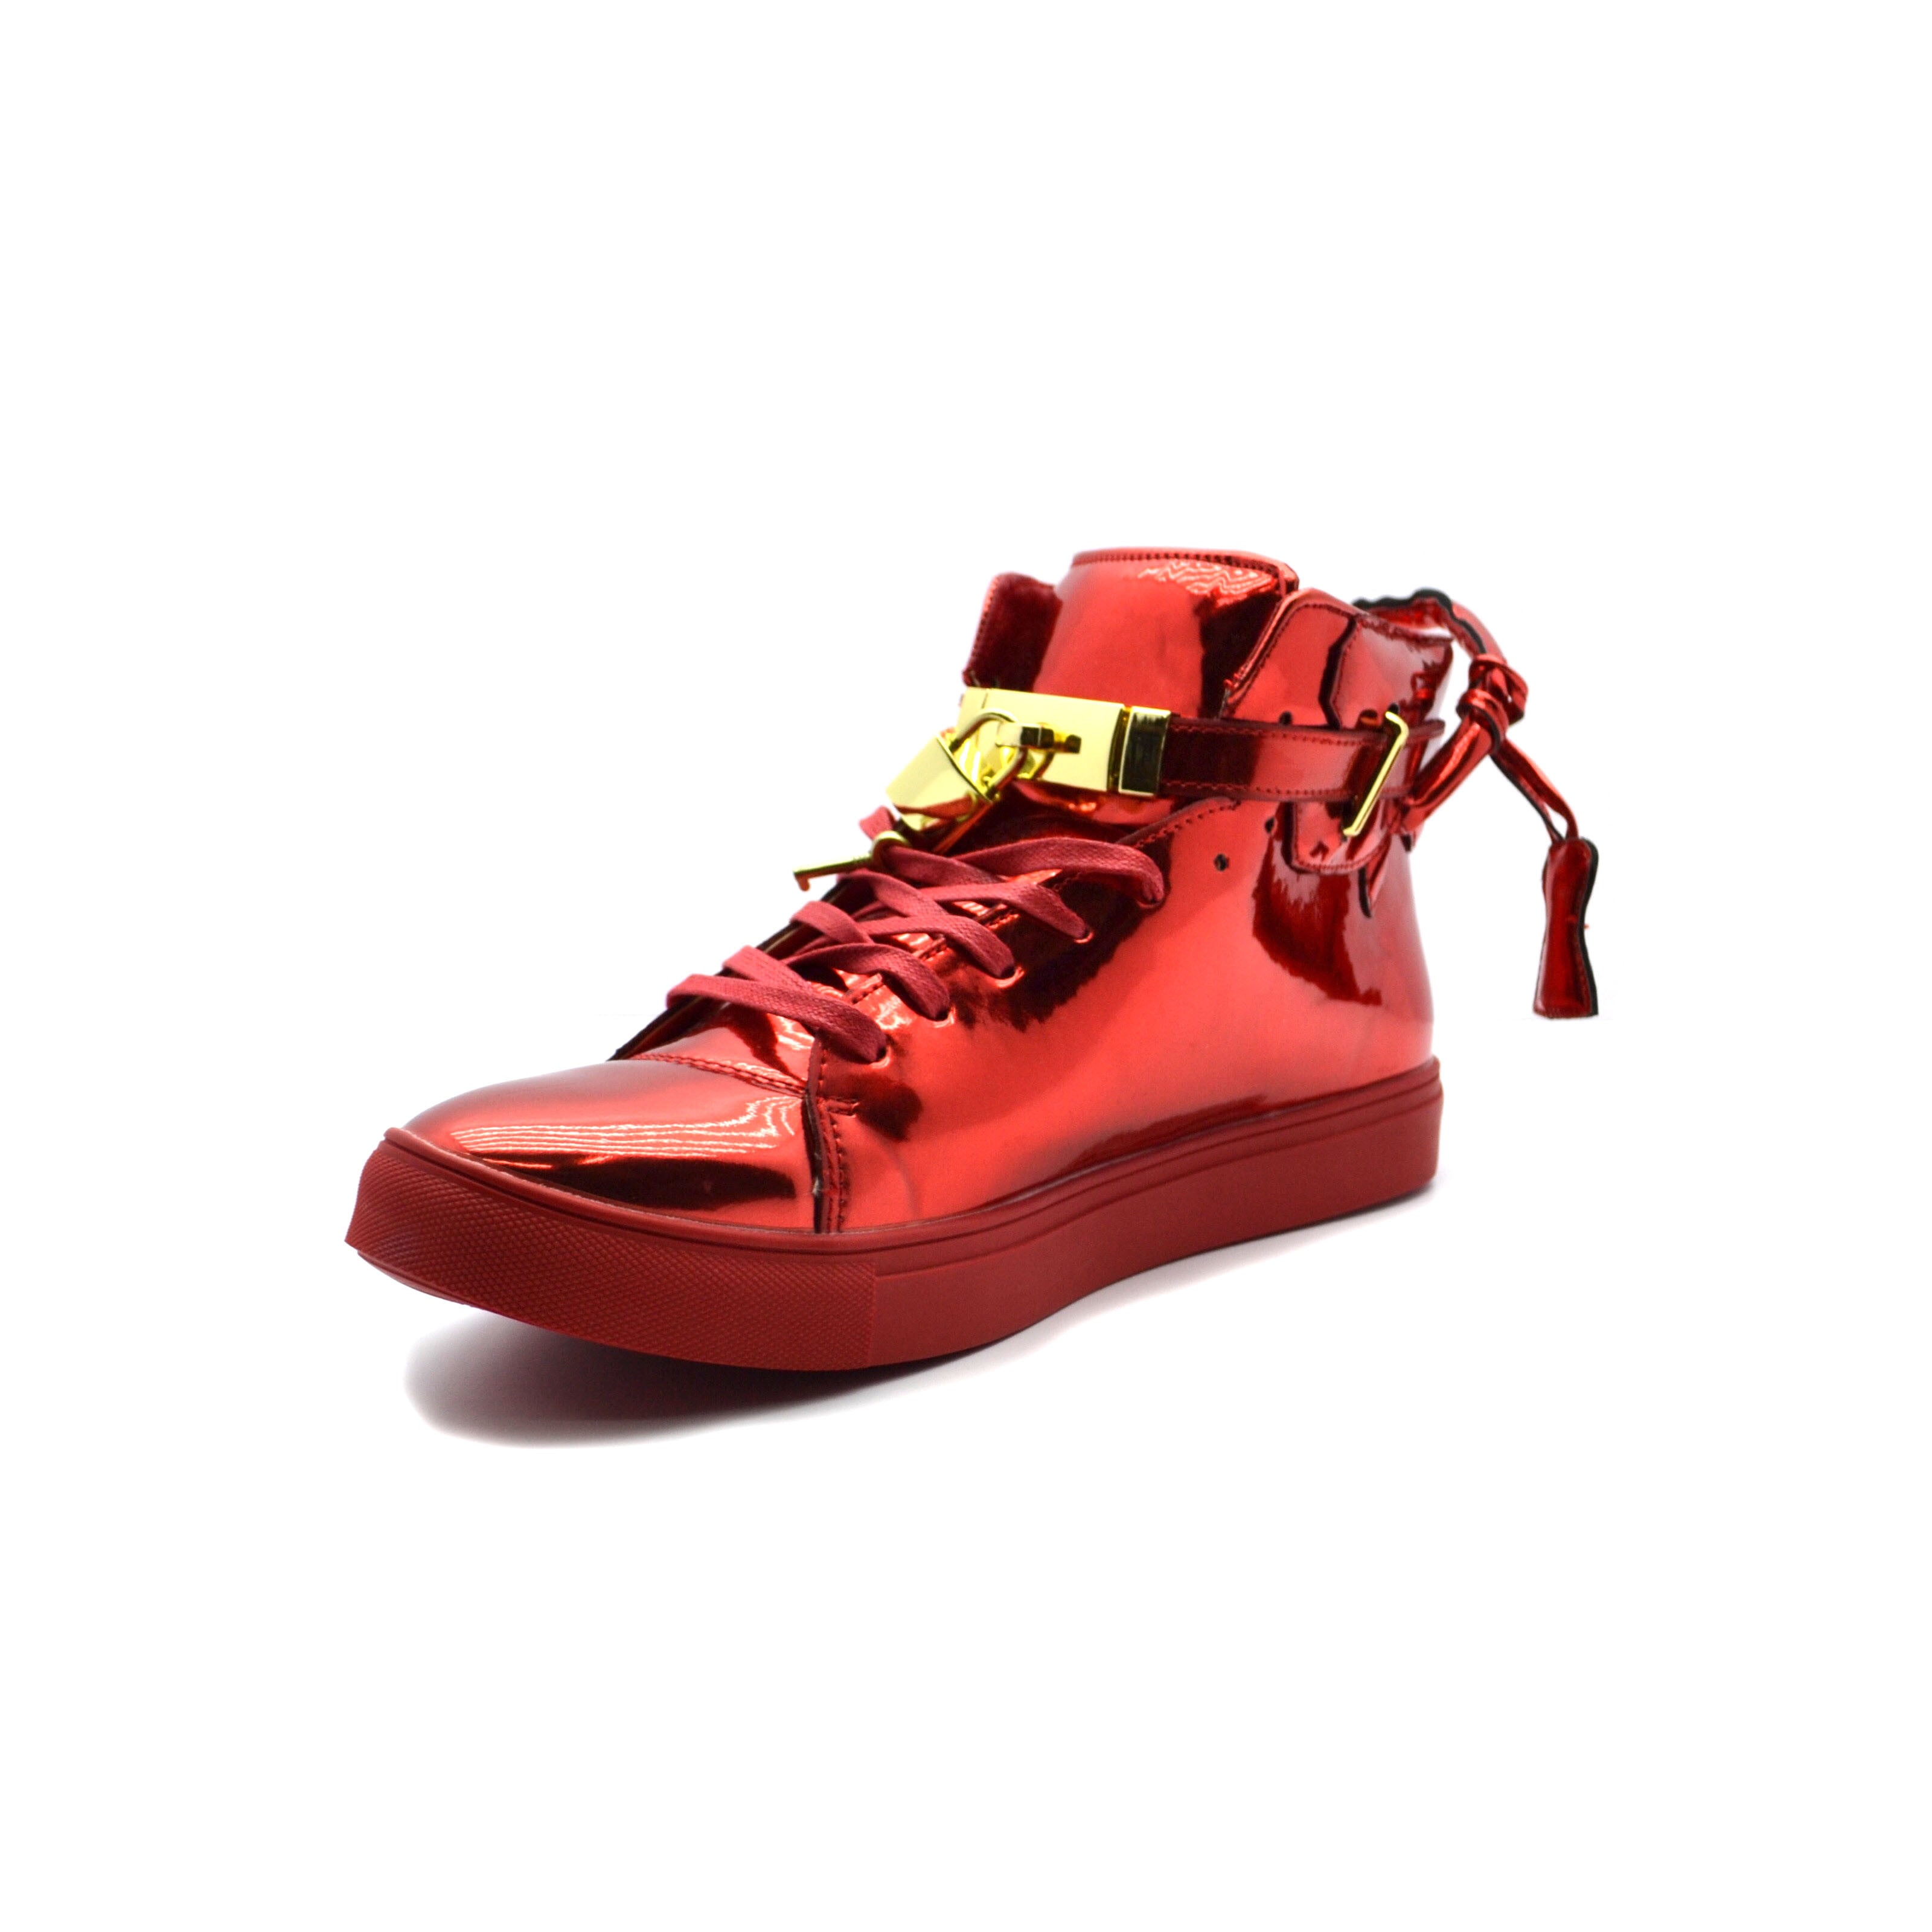 RED PATENT ENCORE - Bacana Clothing + Shoes